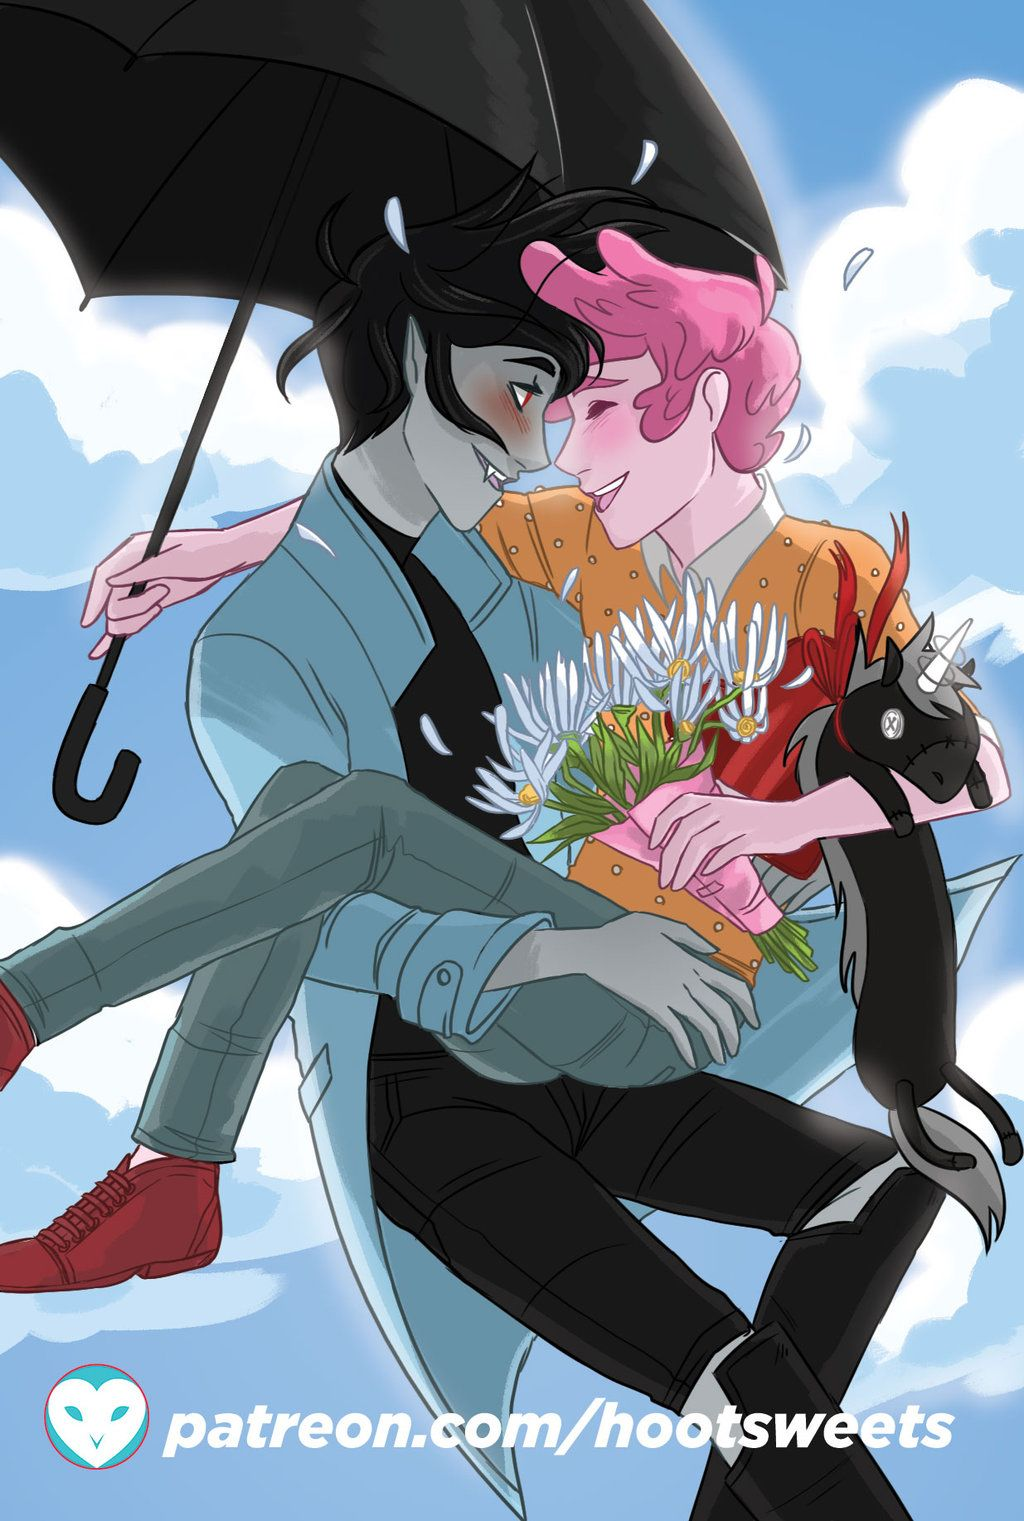 A Prince Gumball/ Marshall Lee (Adventure Time) Comic Part